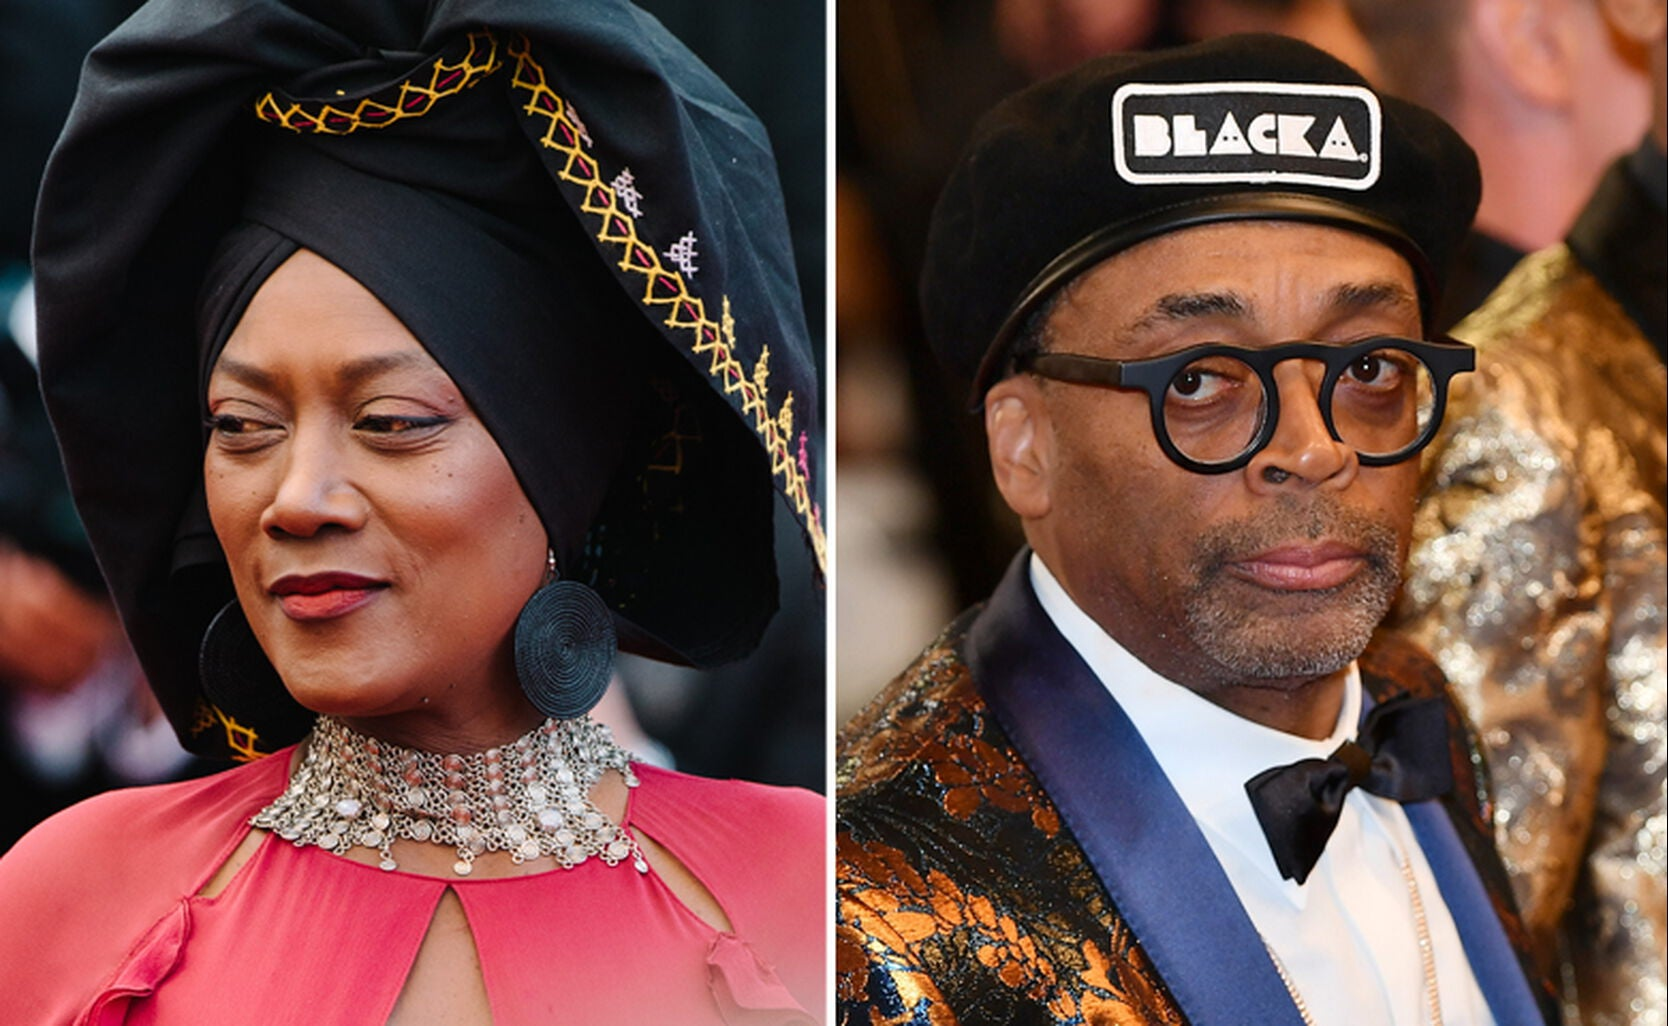 Khadja Nin and Spike Lee